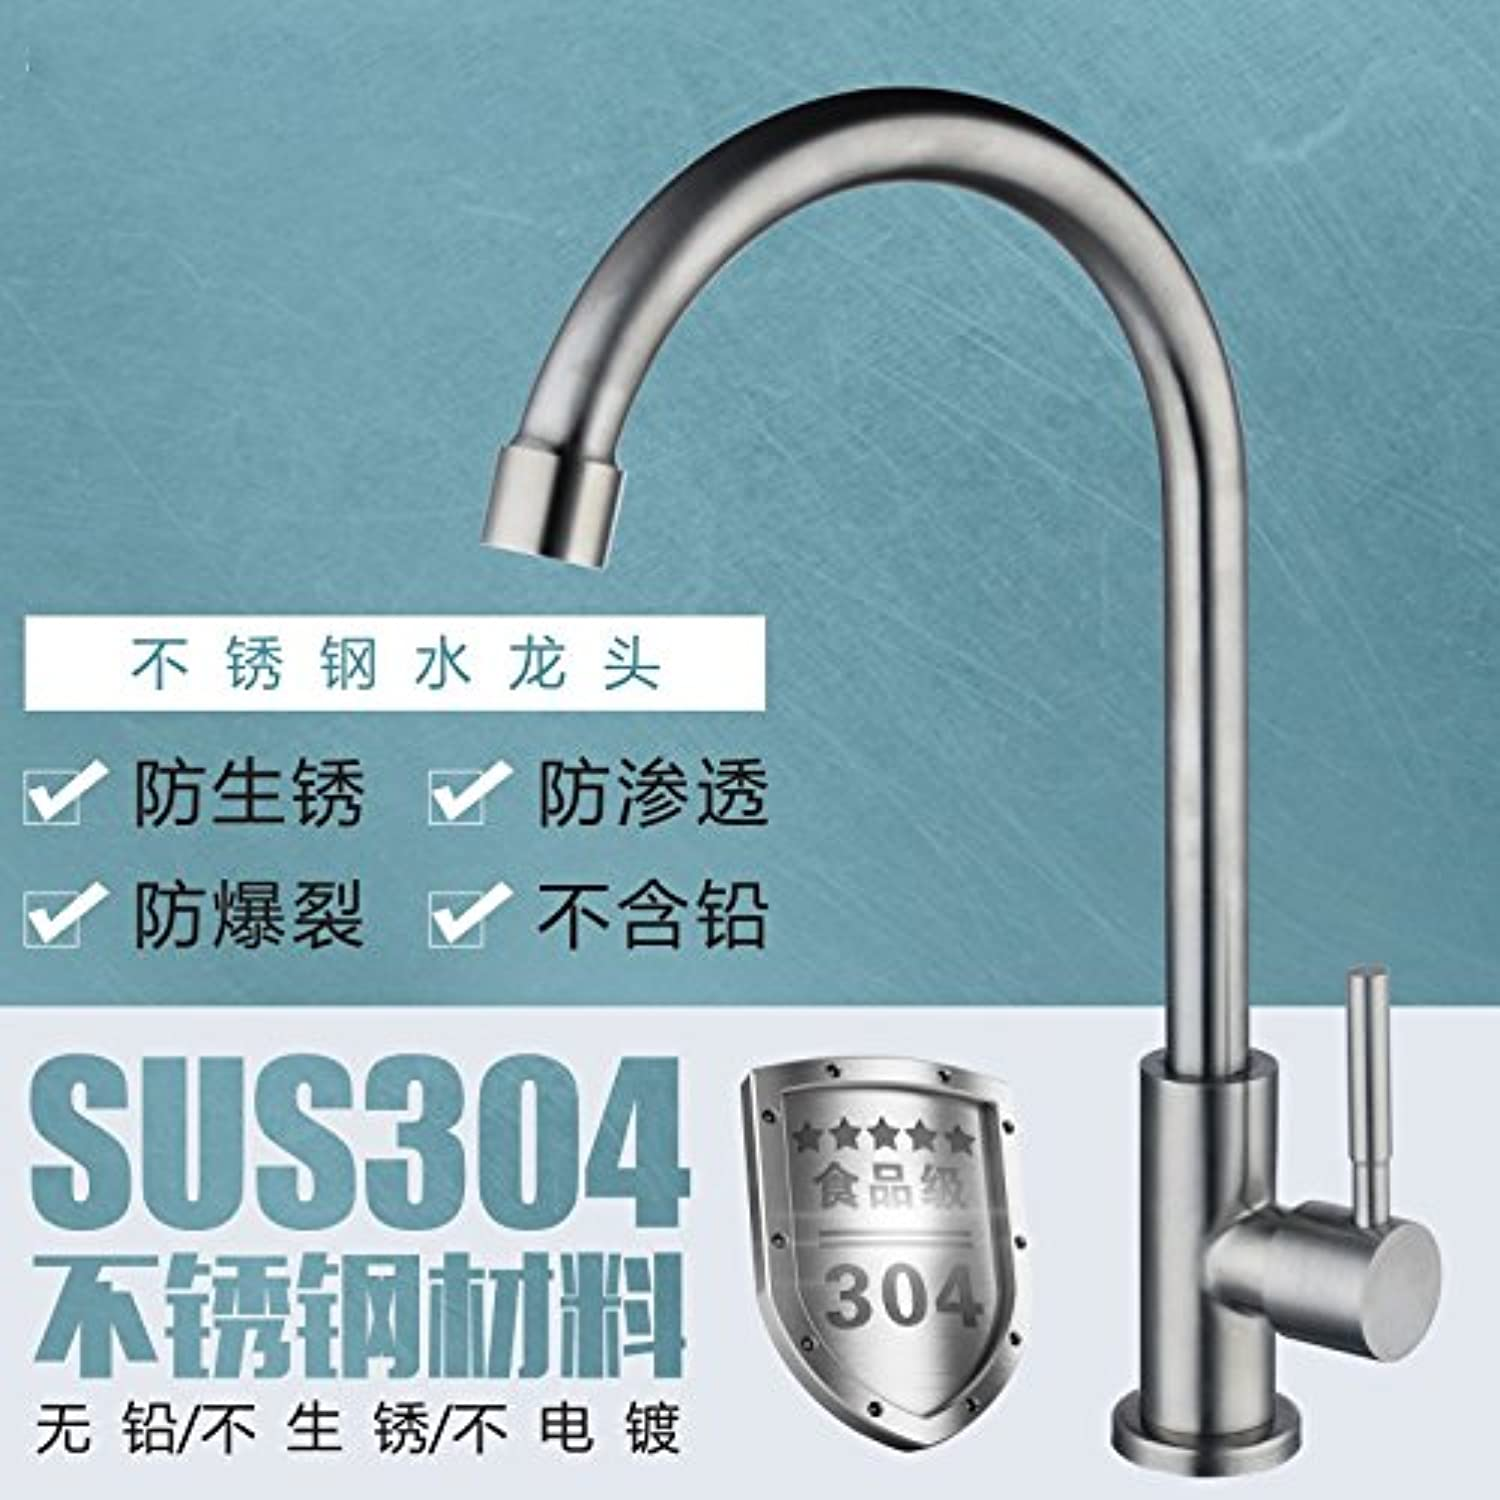 SunSuiKitchen faucet, hot and cold dish basin, single cold water faucet, sink, 304 stainless steel sink, water tap special price,Stainless steel single cold water faucet 60cm inlet pipe